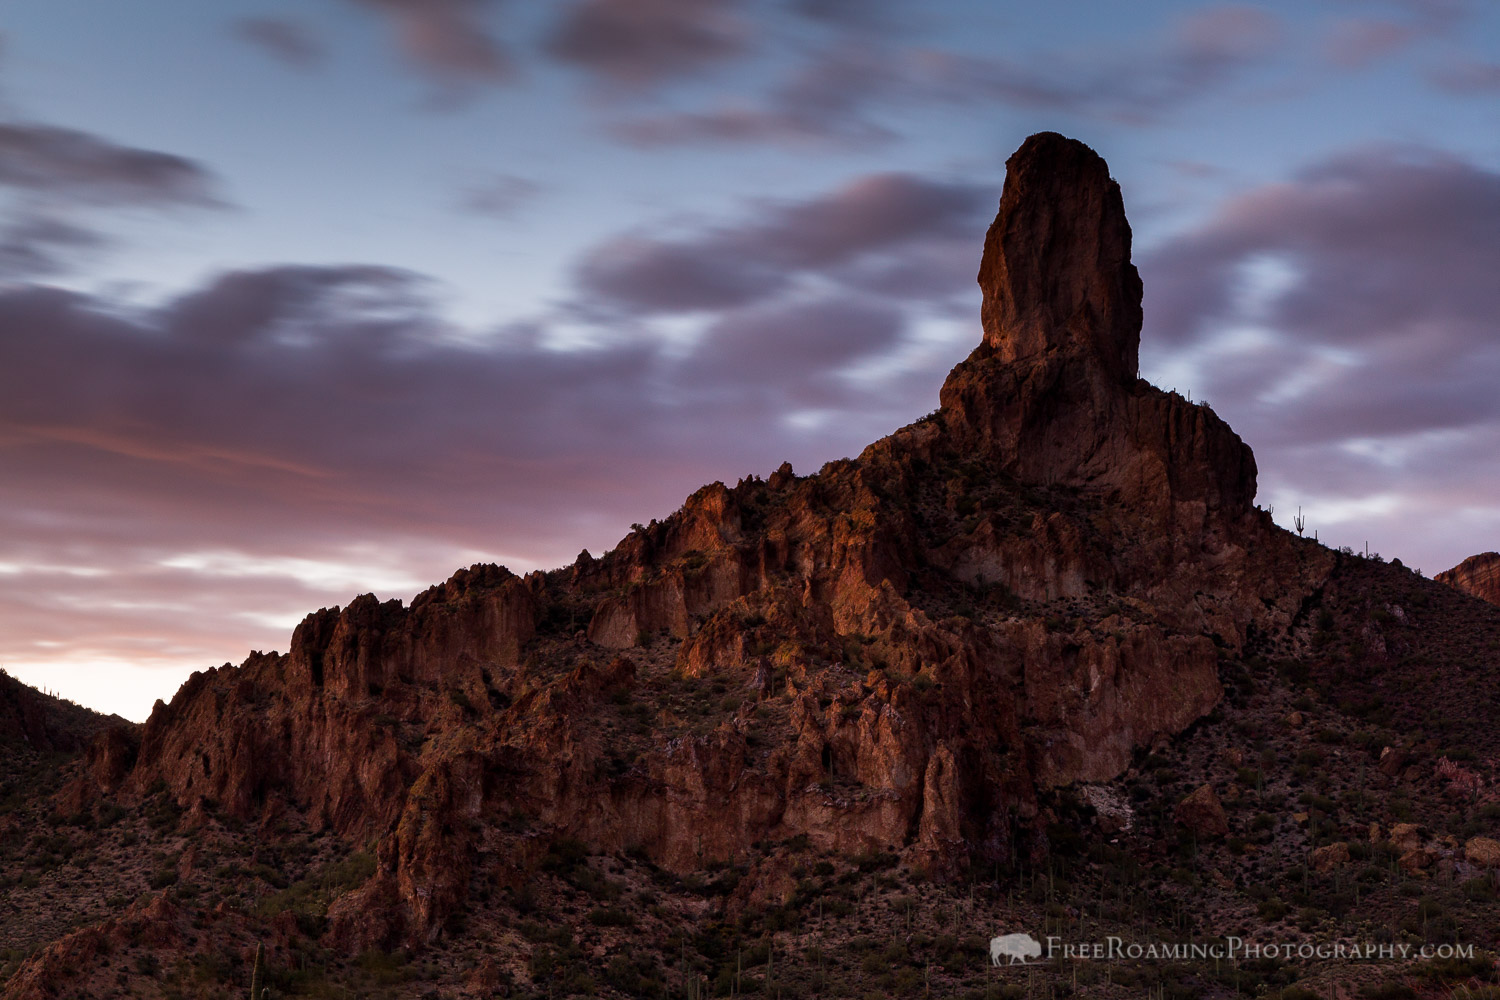 Twilight Sky over Dale's Butte